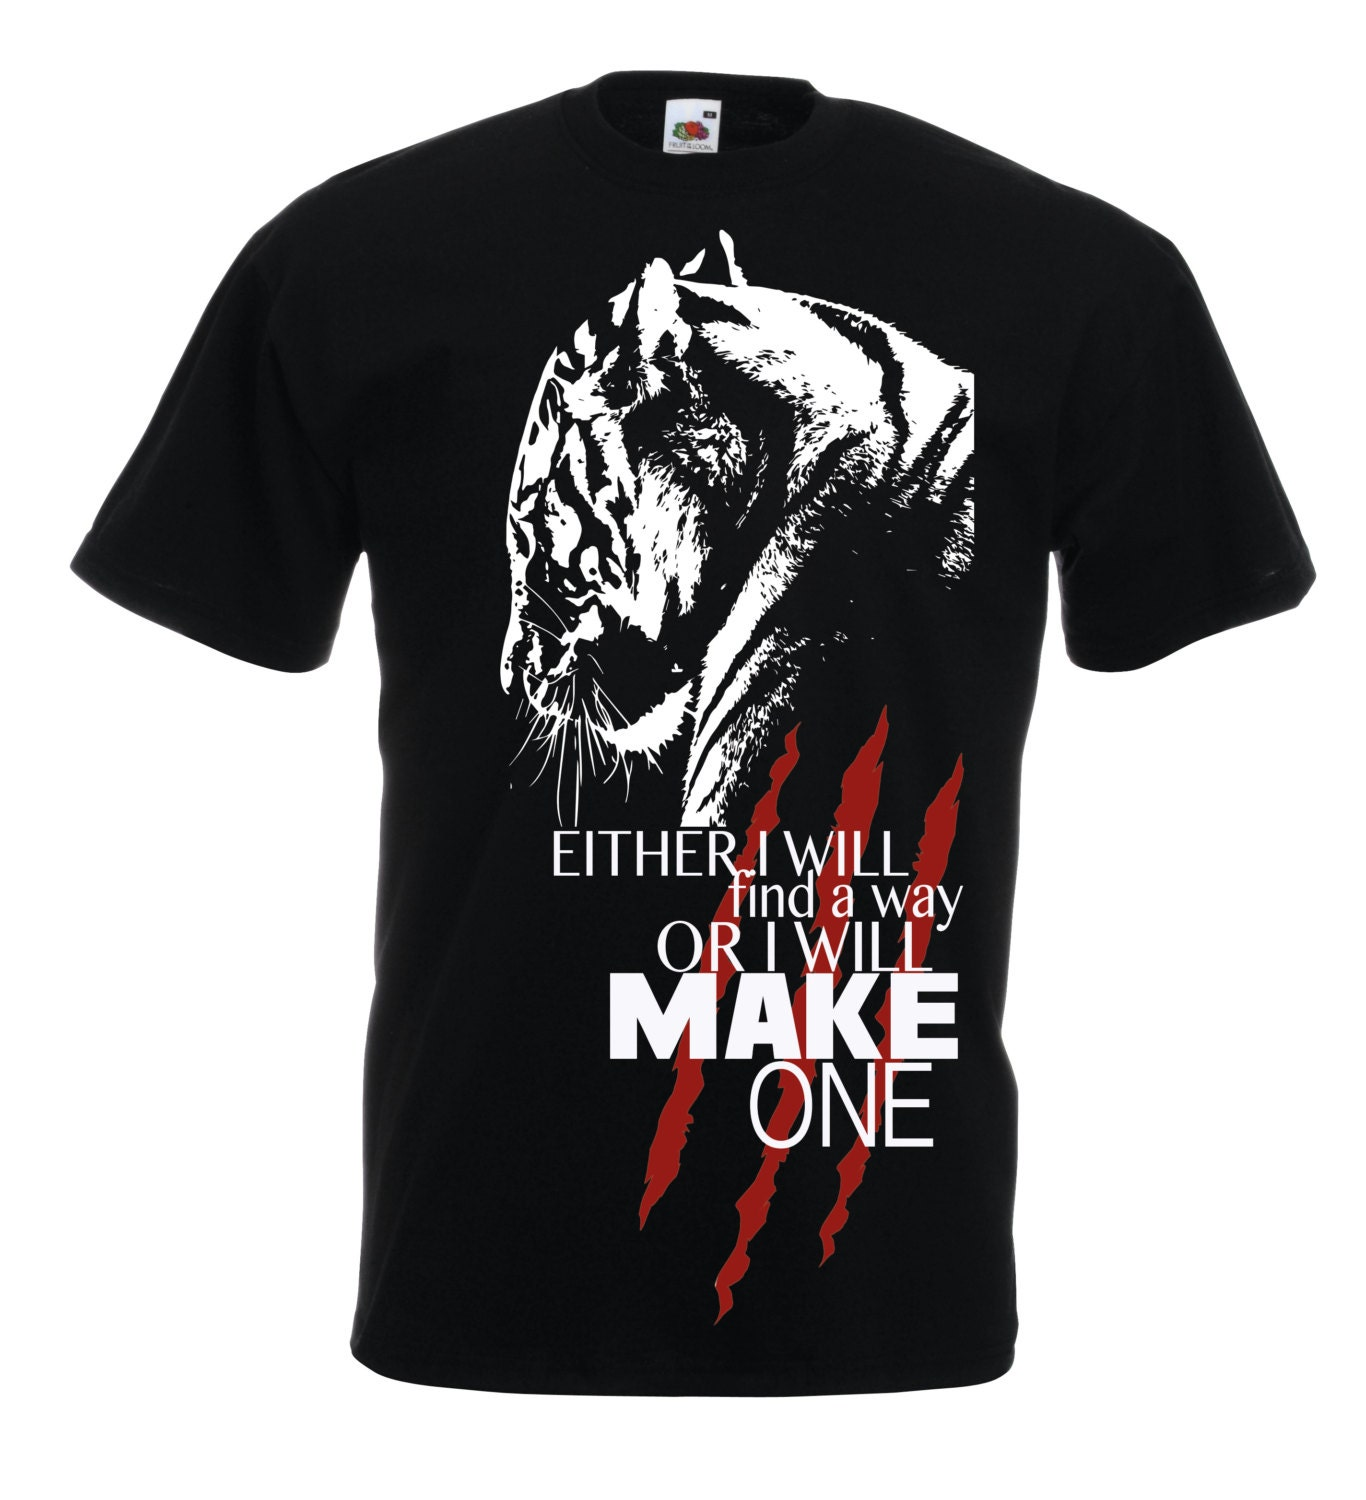 Black t shirt quotes -  Zoom